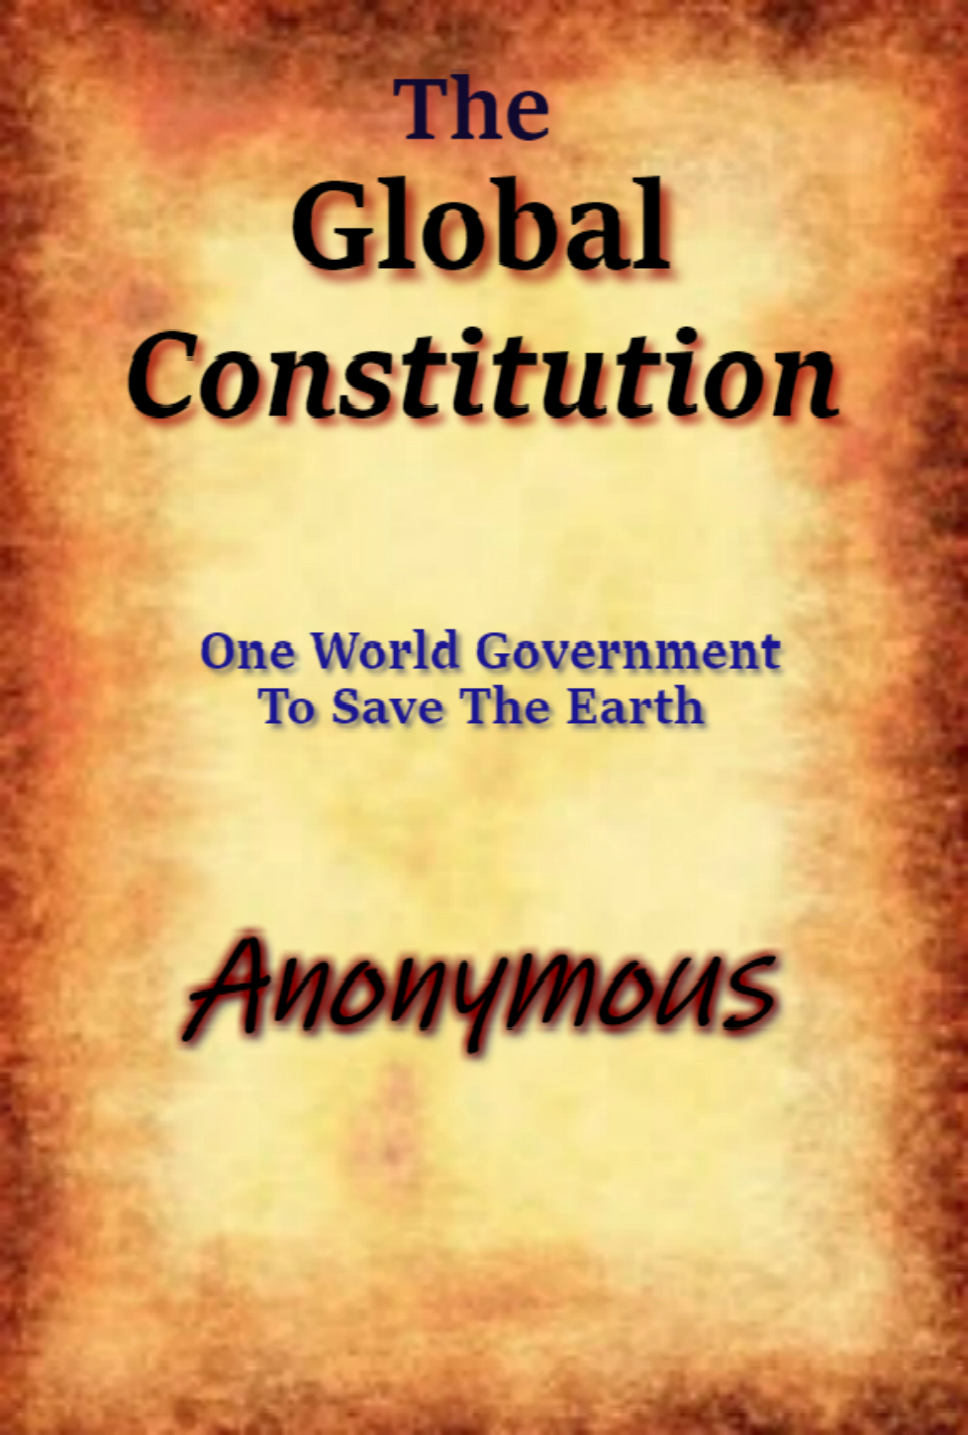 Global Pandemic Vs The Global Constitution